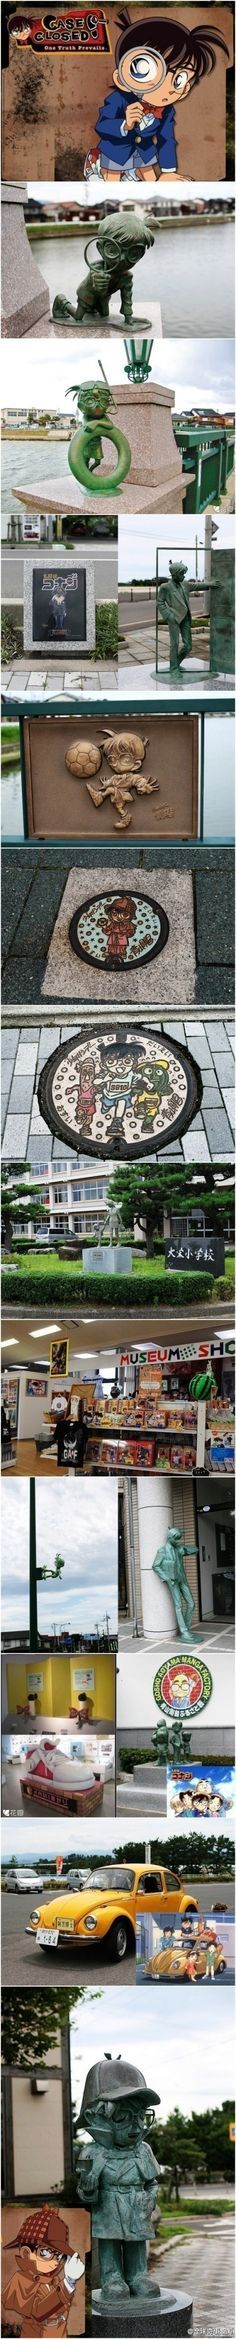 """Conan town, Tottori Prefecture in Japan, is a small town facing the Sea of Japan, is the author Aoyama Gang Chang hometown. You can walk around the town and see the figure of Conan everywhere. Conan Avenue, Conan Bridge, even road signs, signs, bronze reliefs, covers are all with Conan as the theme. It is the world's """"Conan fans"""" pilgrimage!"""